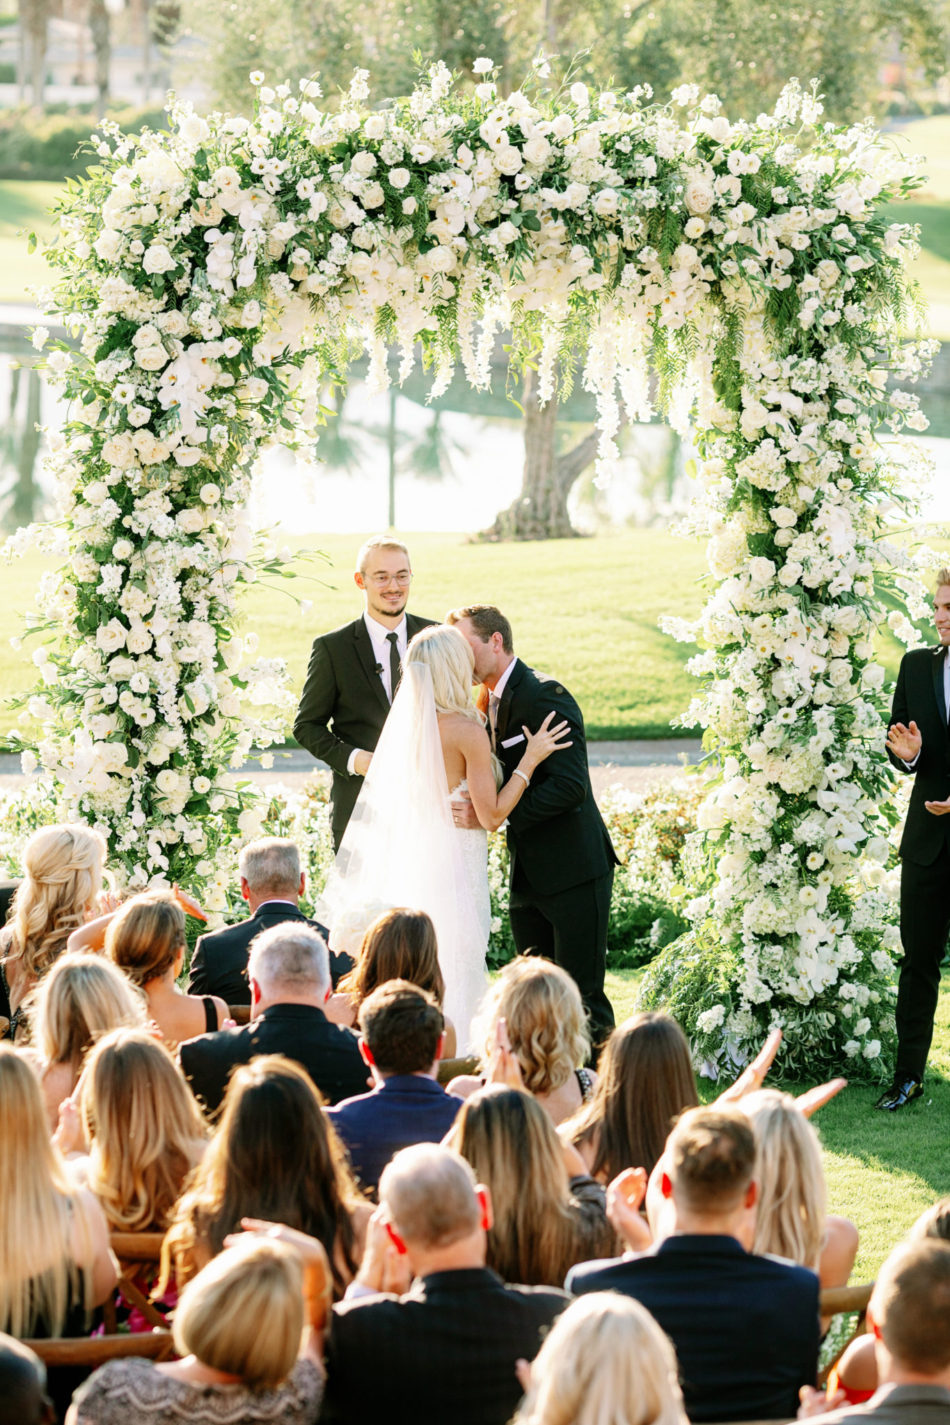 first kiss, bride and groom, floral-filled arch, exquisite white wedding, floral design, florist, wedding florist, wedding flowers, orange county weddings, orange county wedding florist, orange county florist, orange county floral design, flowers by cina